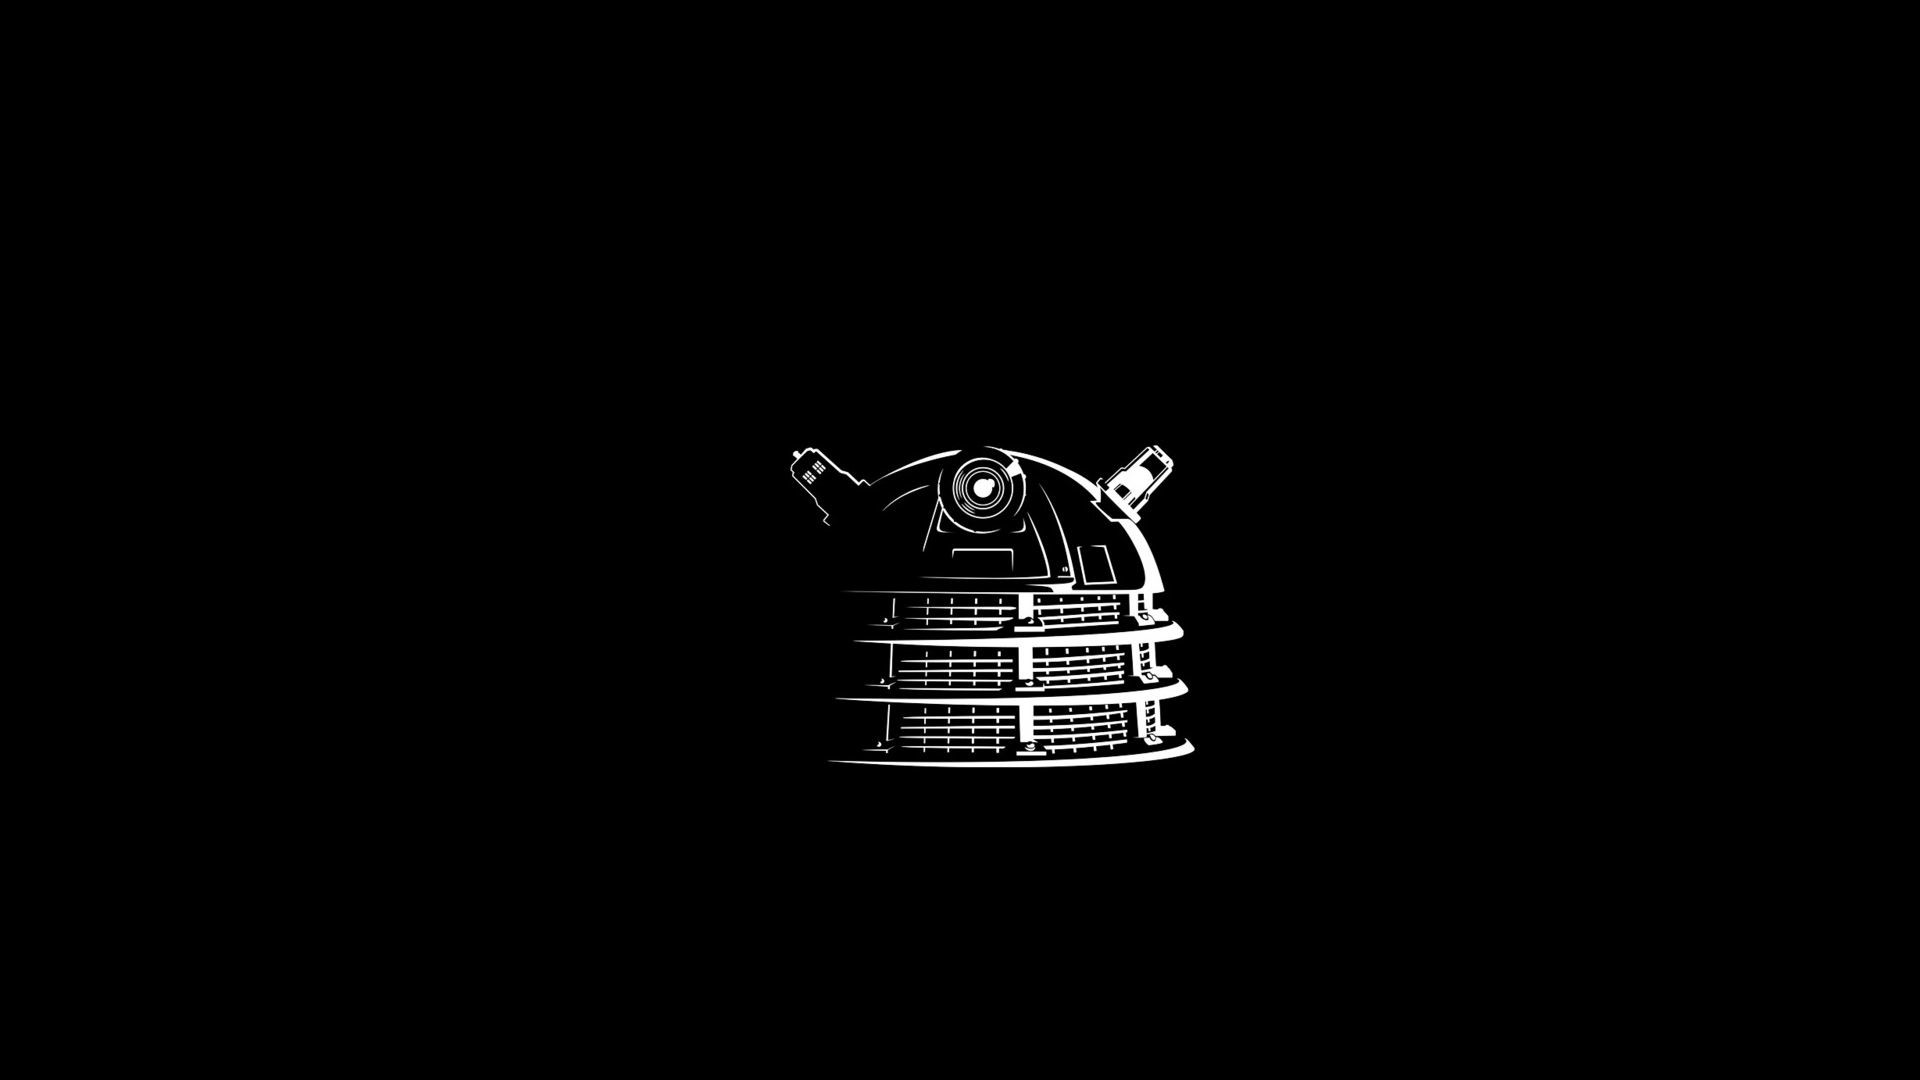 1920x1080 Collection of Dr Who Wallpapers For Desktop on HDWallpapers